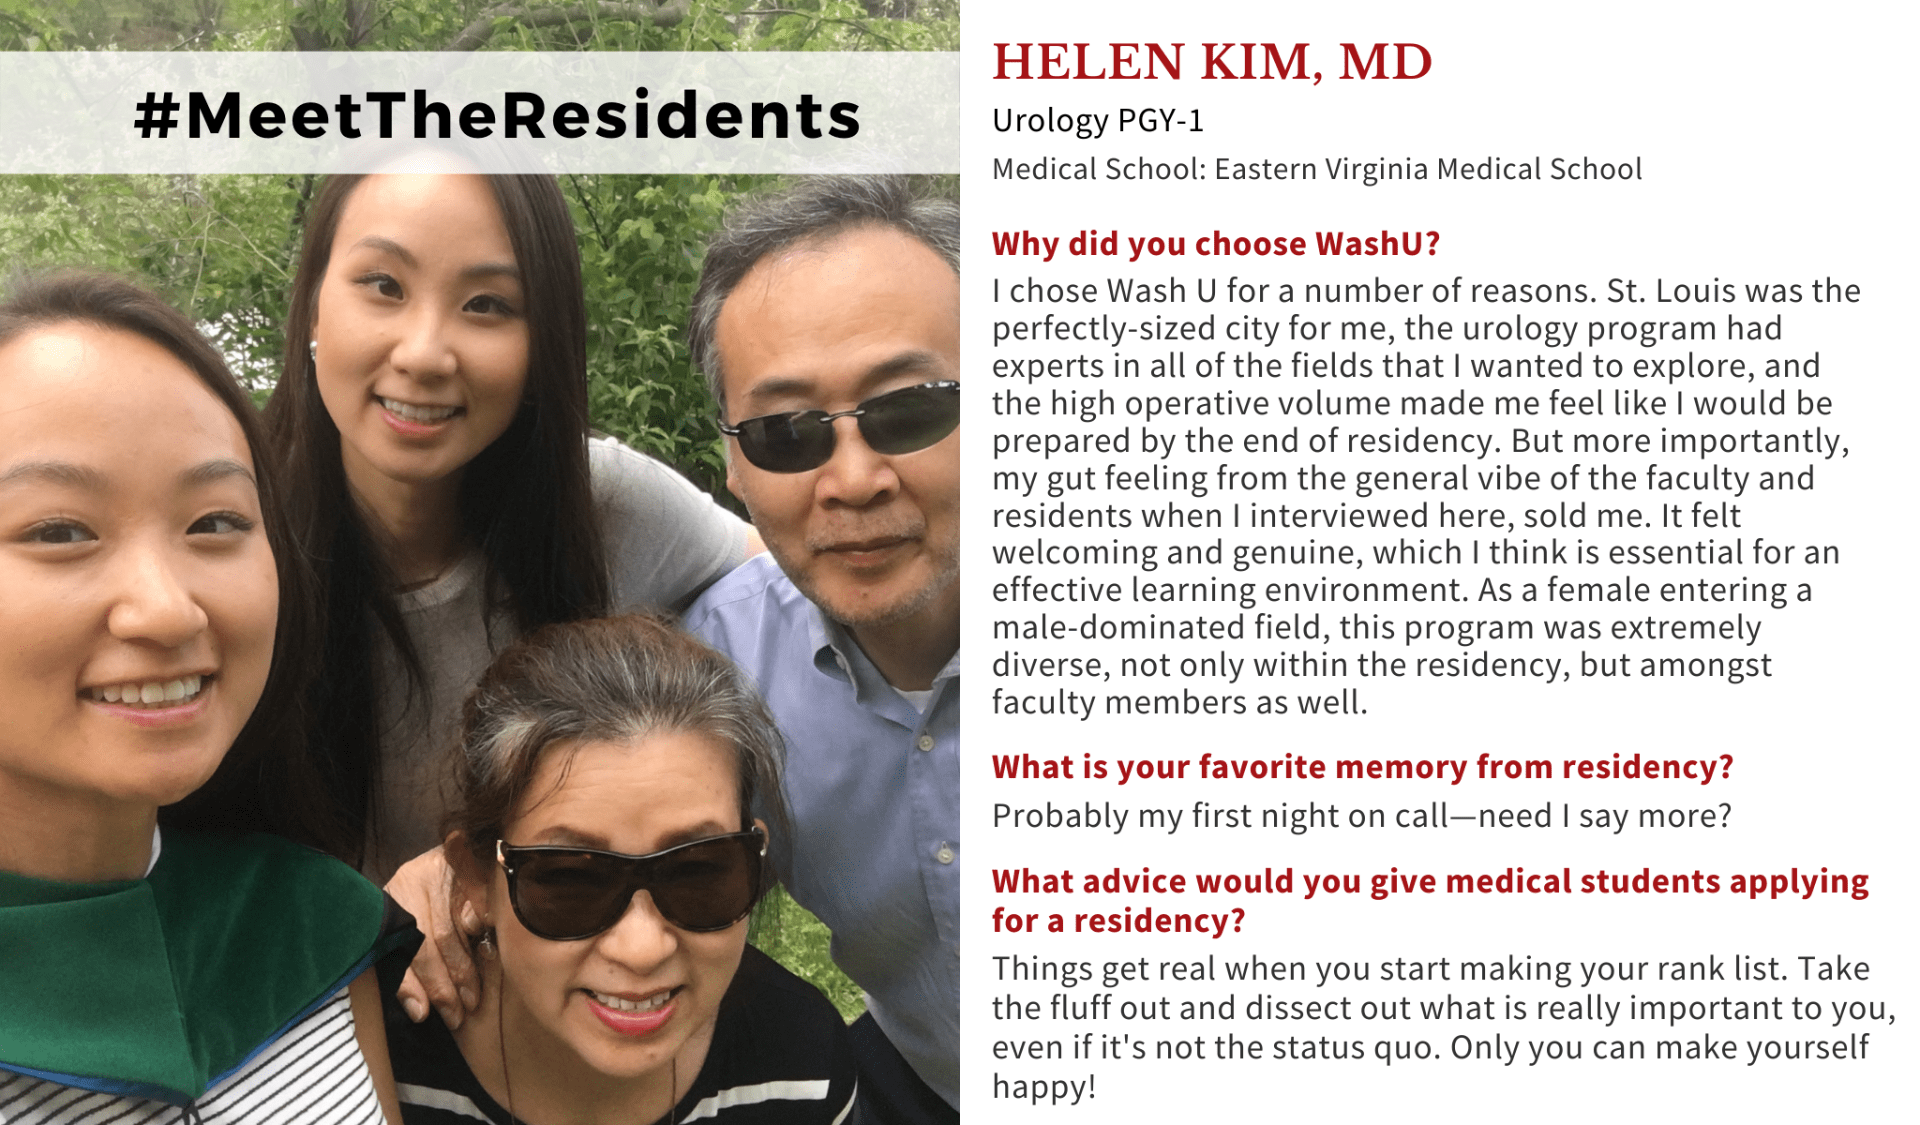 """Image with Helen Kim, MD, and her family. When asked why did you choose Washington University School of Medicine, Helen Kim, MD, Washington University PGY-1 Urology Resident, said: """"I chose Wash U for a number of reasons. St. Louis was the perfectly-sized city for me, the urology program had experts in all of the fields that I wanted to explore, and the high operative volume made me feel like I would be prepared by the end of residency. But more importantly, my gut feeling from the general vibe of the faculty and residents when I interviewed here, sold me. It felt welcoming and genuine, which I think is essential for an effective learning environment. As a female entering a male-dominated field, this program was extremely diverse, not only within the residency, but amongst faculty members as well."""" When asked what is your favorite memory from residency, Kim said: """"Probably my first night on call—need I say more?"""" When asked what advice would you give medical students applying for a residency, Kim said: """"Things get real when you start making your rank list. Take the fluff out and dissect out what is really important to you, even if it's not the status quo. Only you can make yourself happy!"""""""